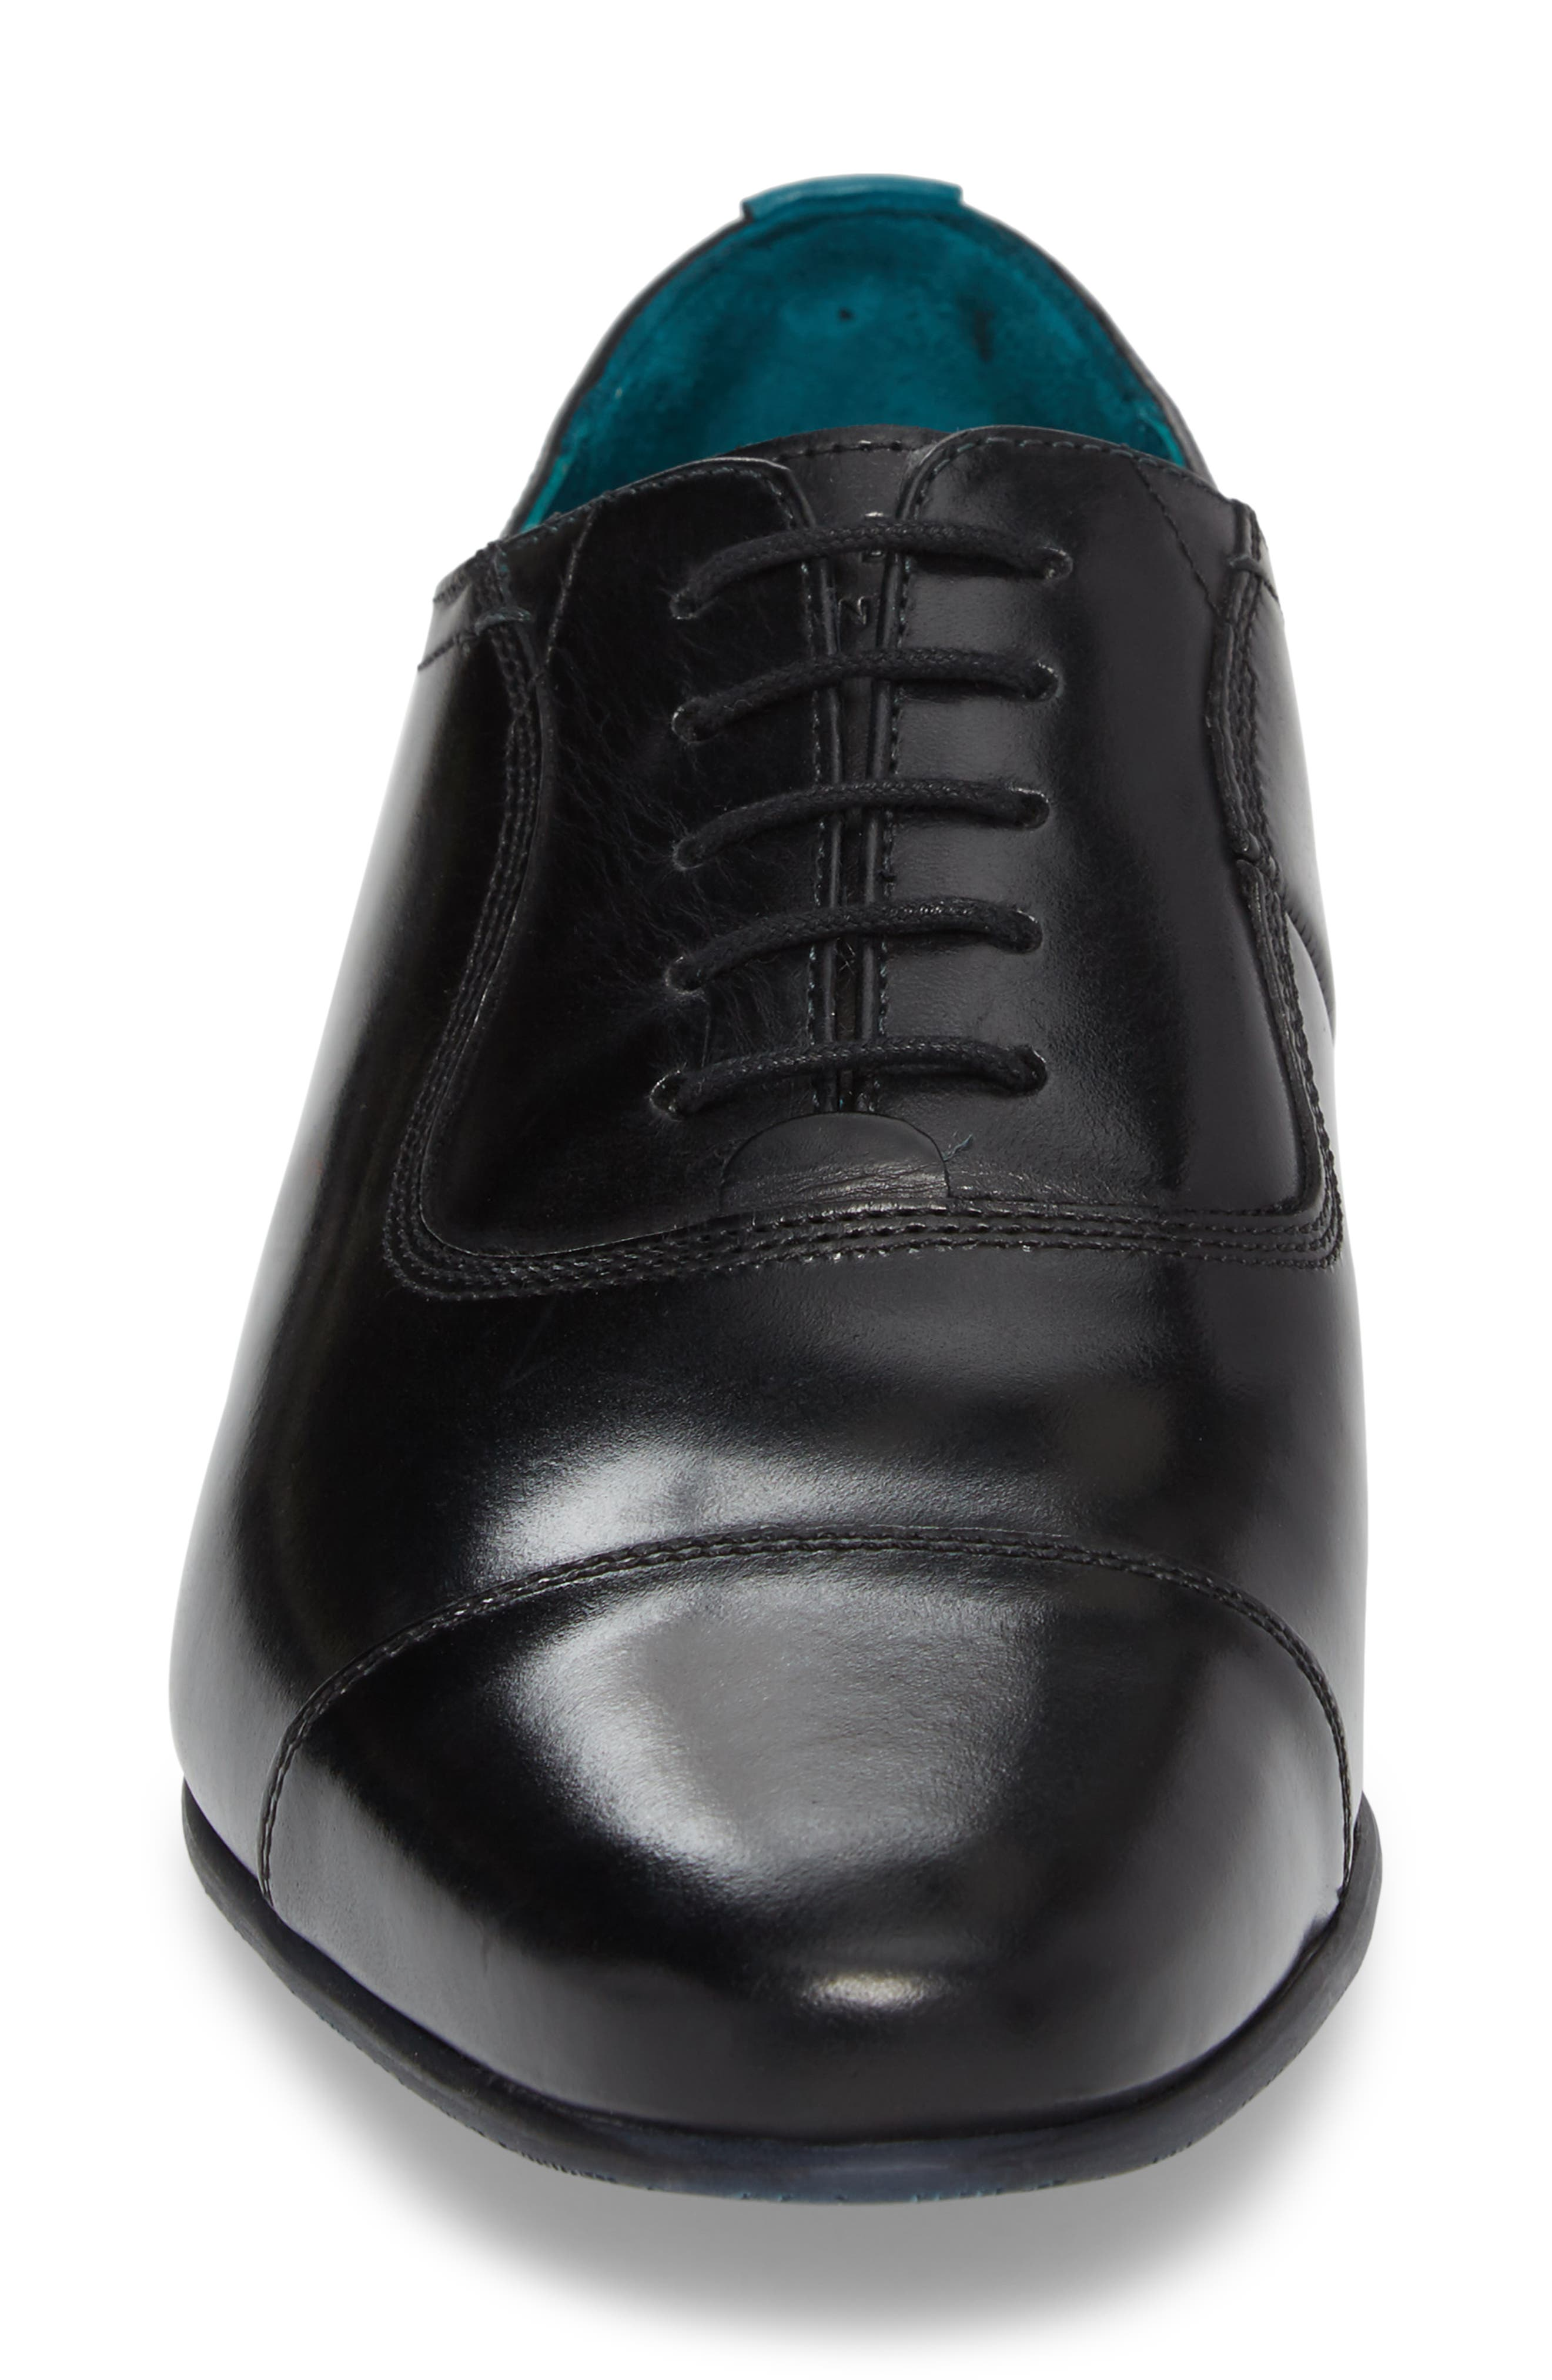 TED BAKER LONDON, Karney Cap Toe Oxford, Alternate thumbnail 4, color, BLACK LEATHER